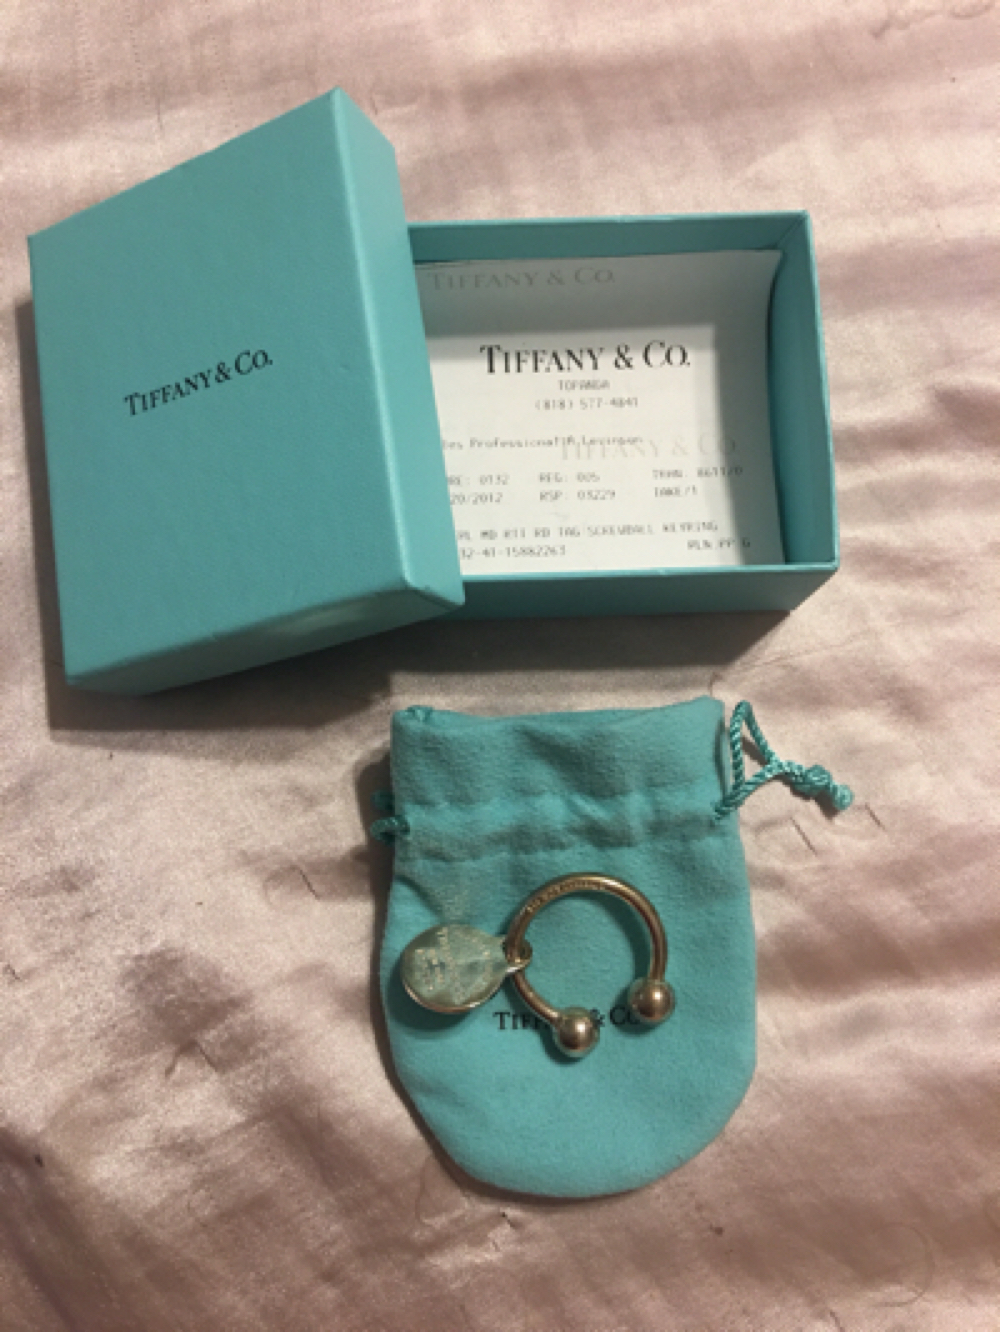 Tiffany&Co keychain with round tag